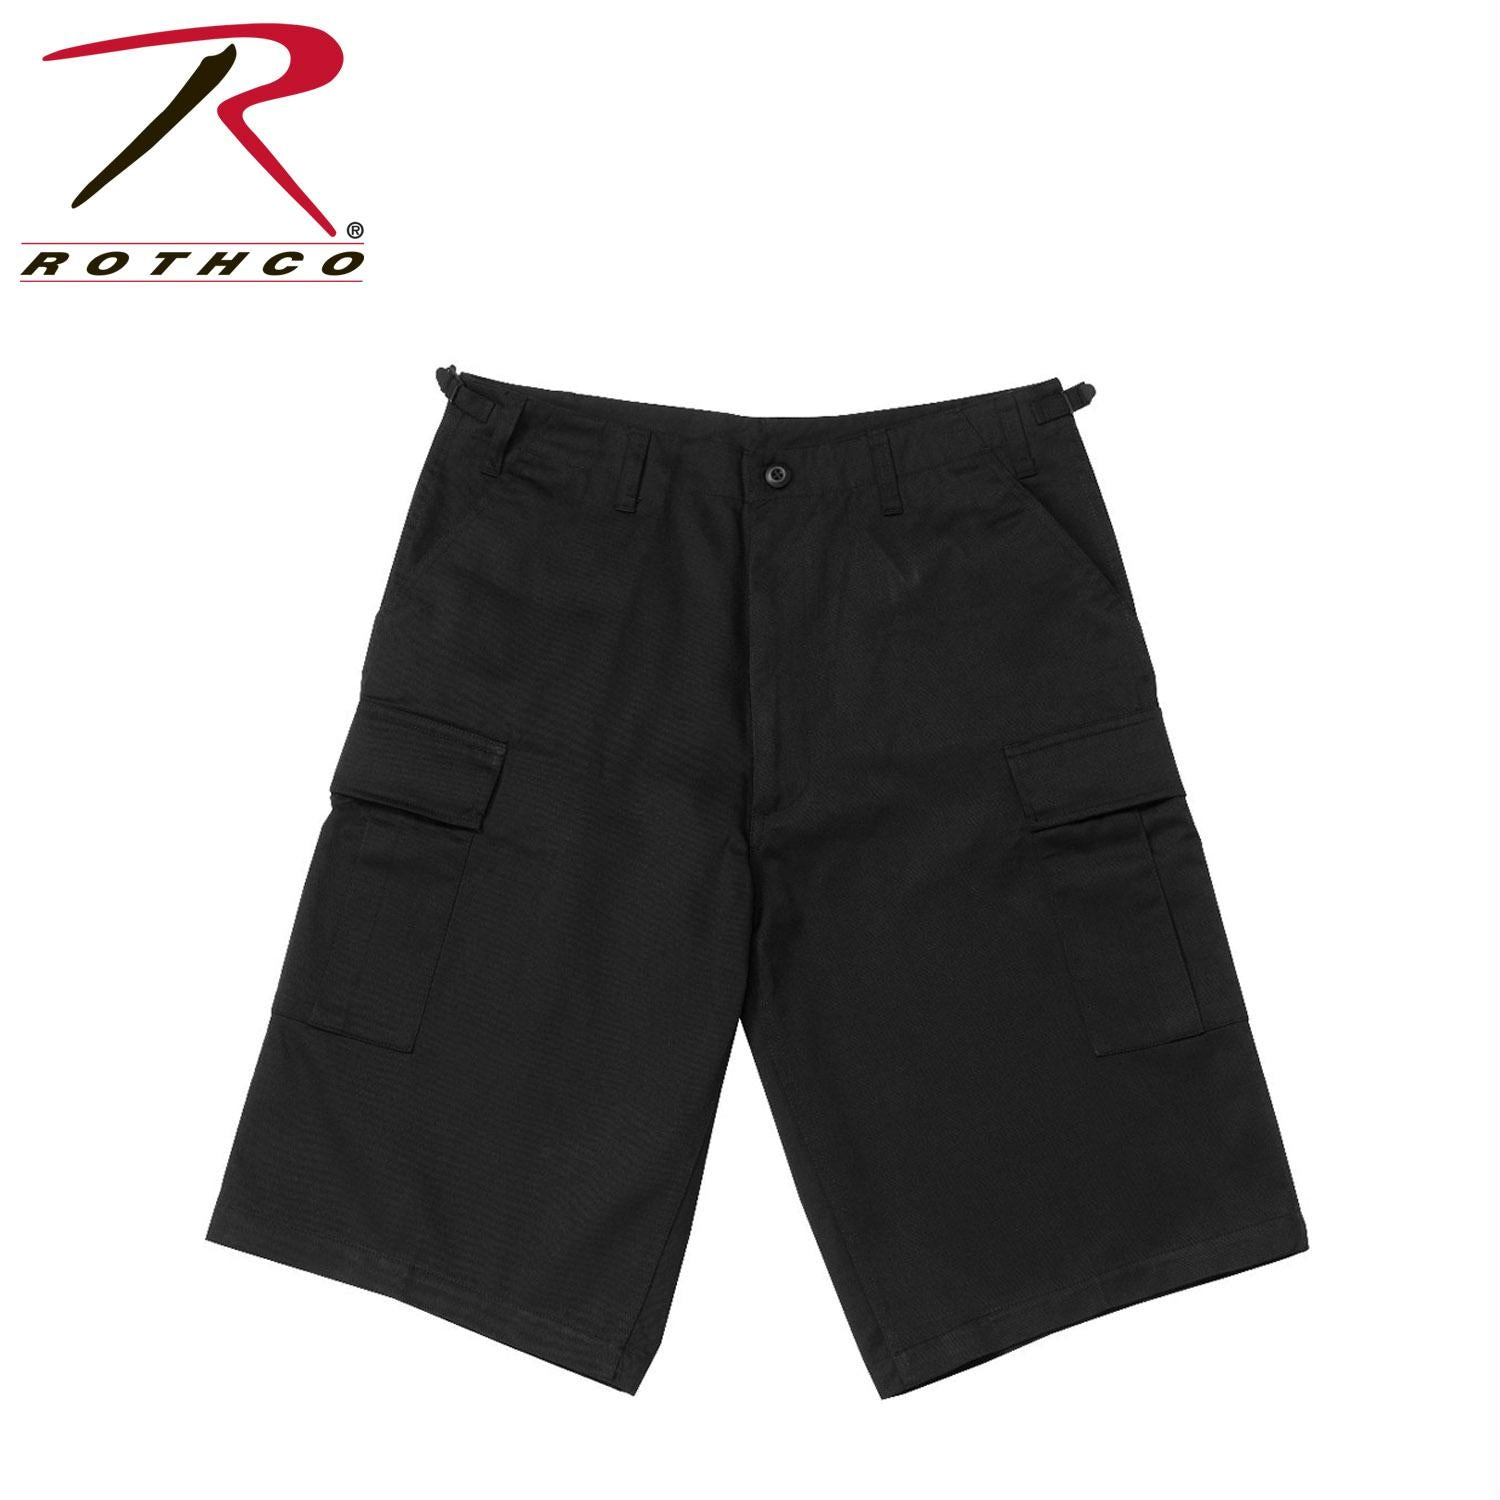 Rothco Long Length BDU Short - Black / XL